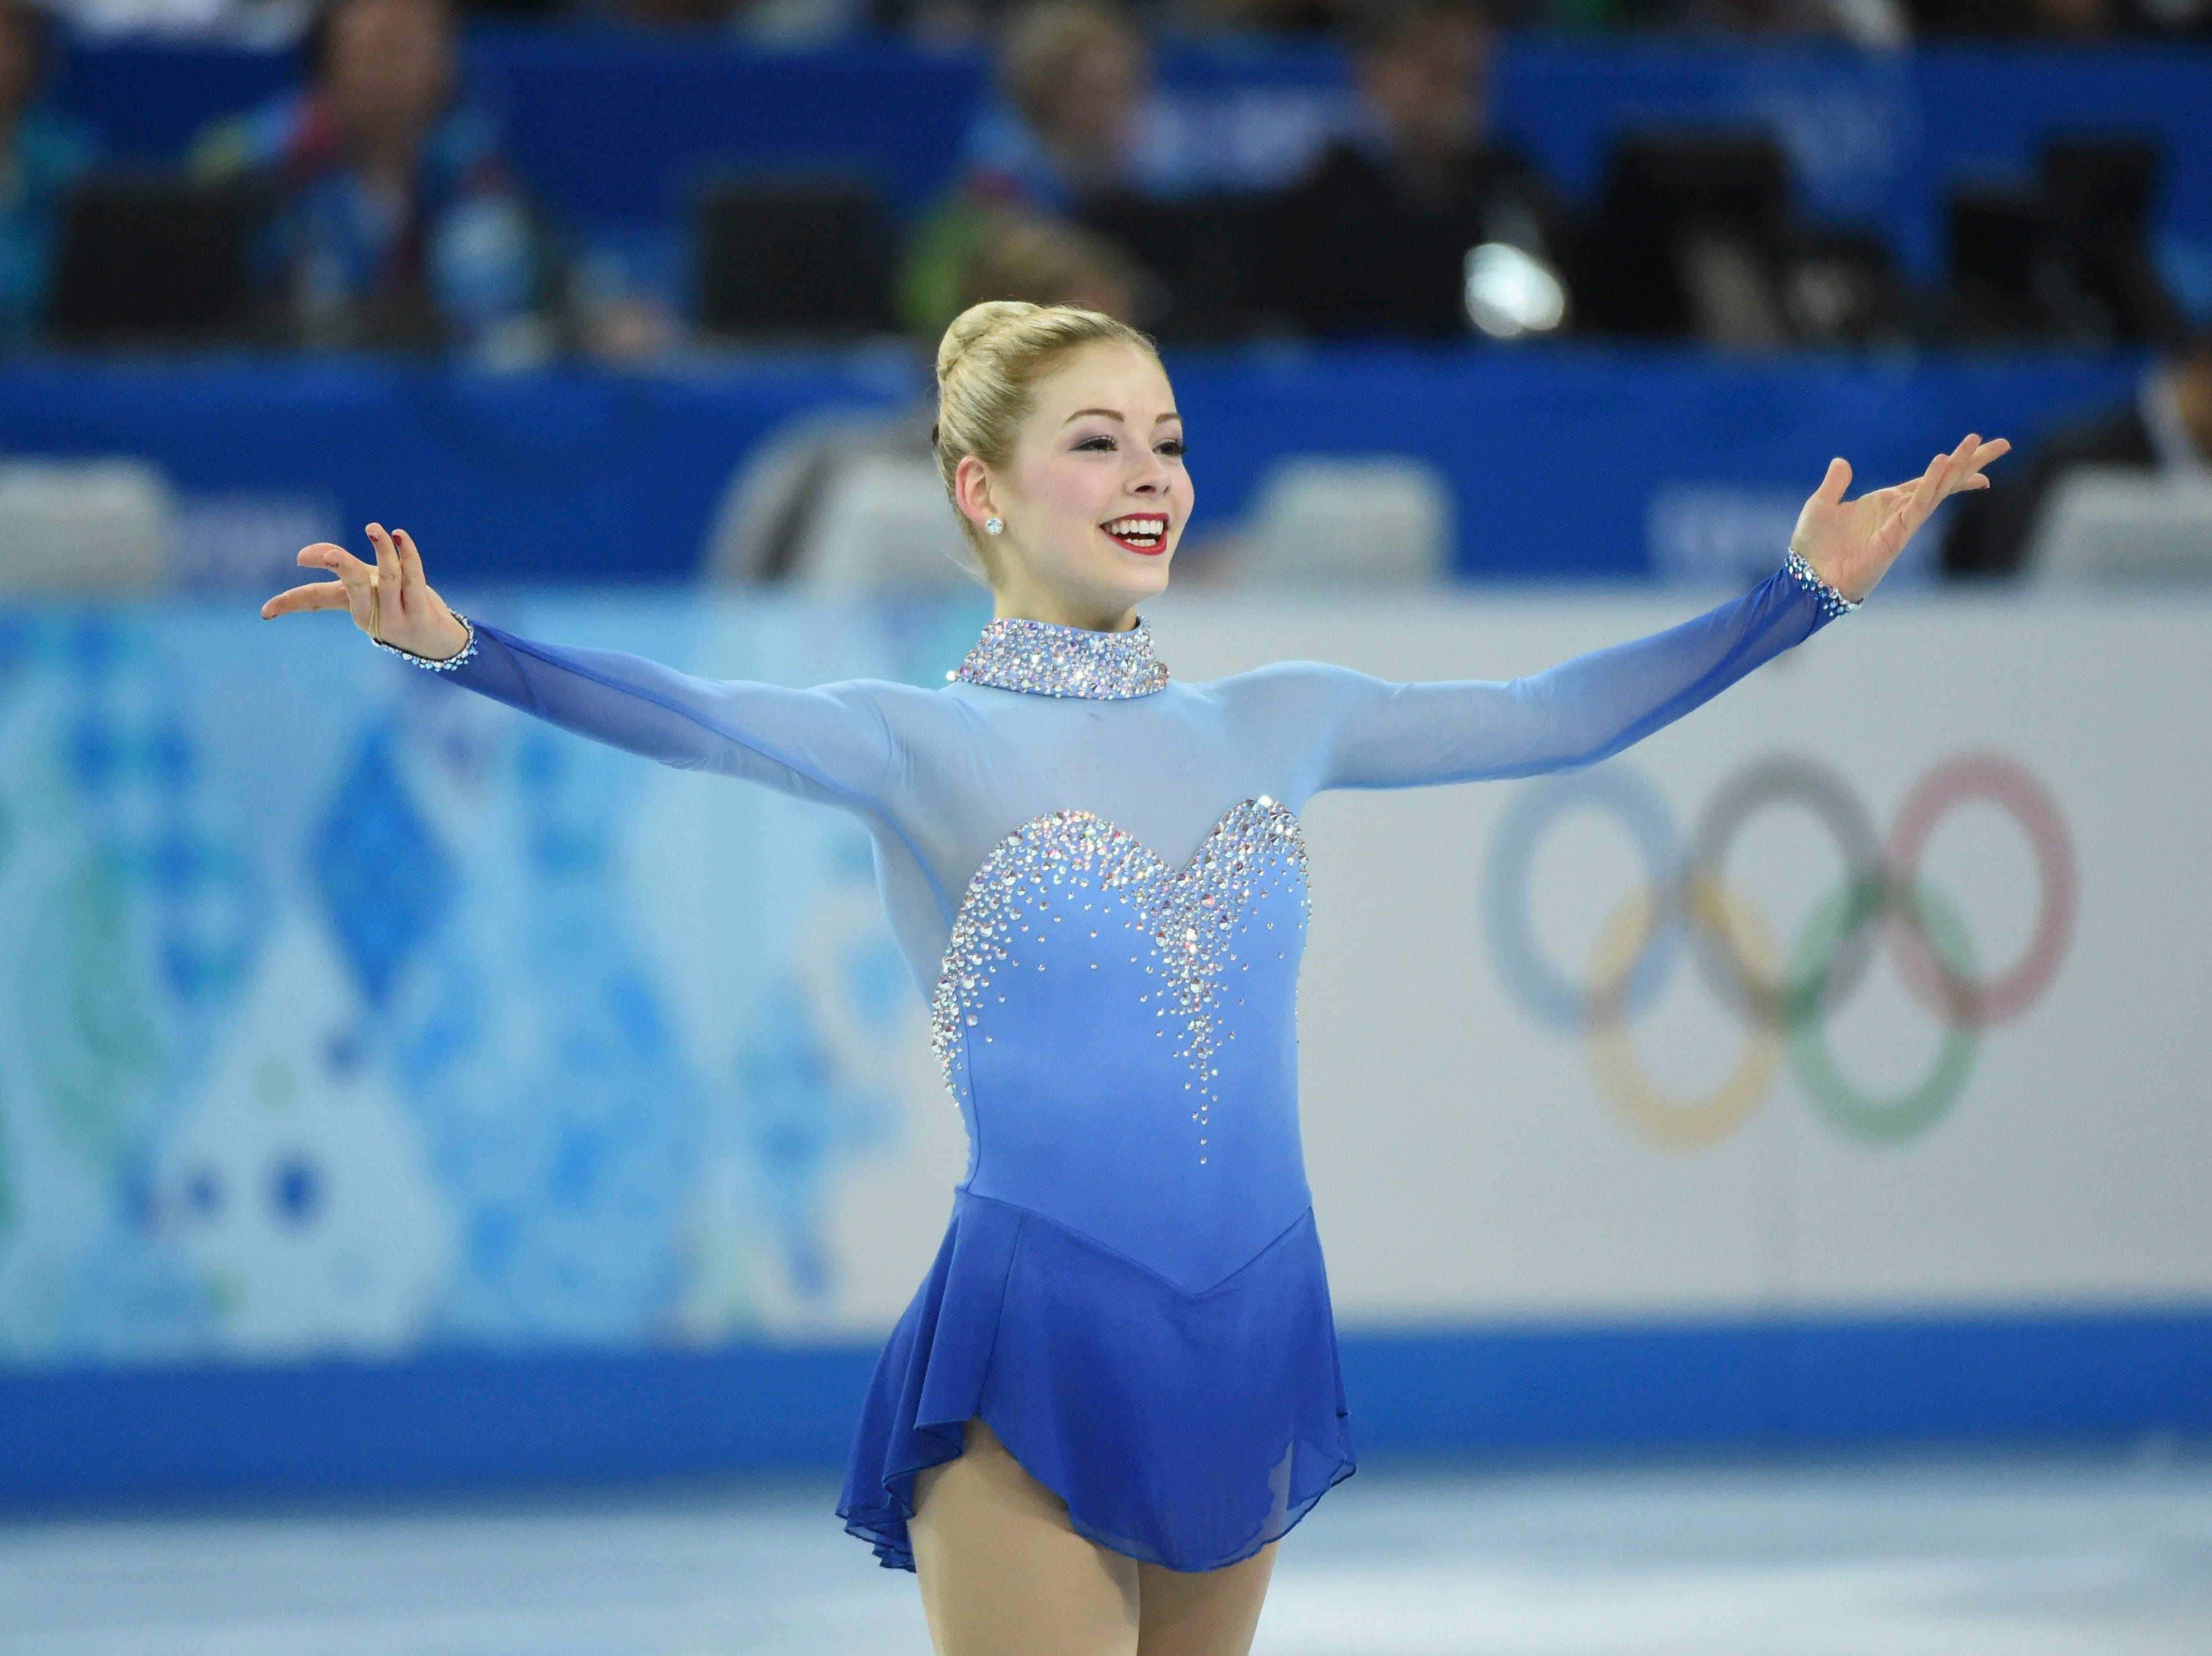 At the 2014 Olympic Games in Sochi, Gracie Gold finished fourth in the women's competition.